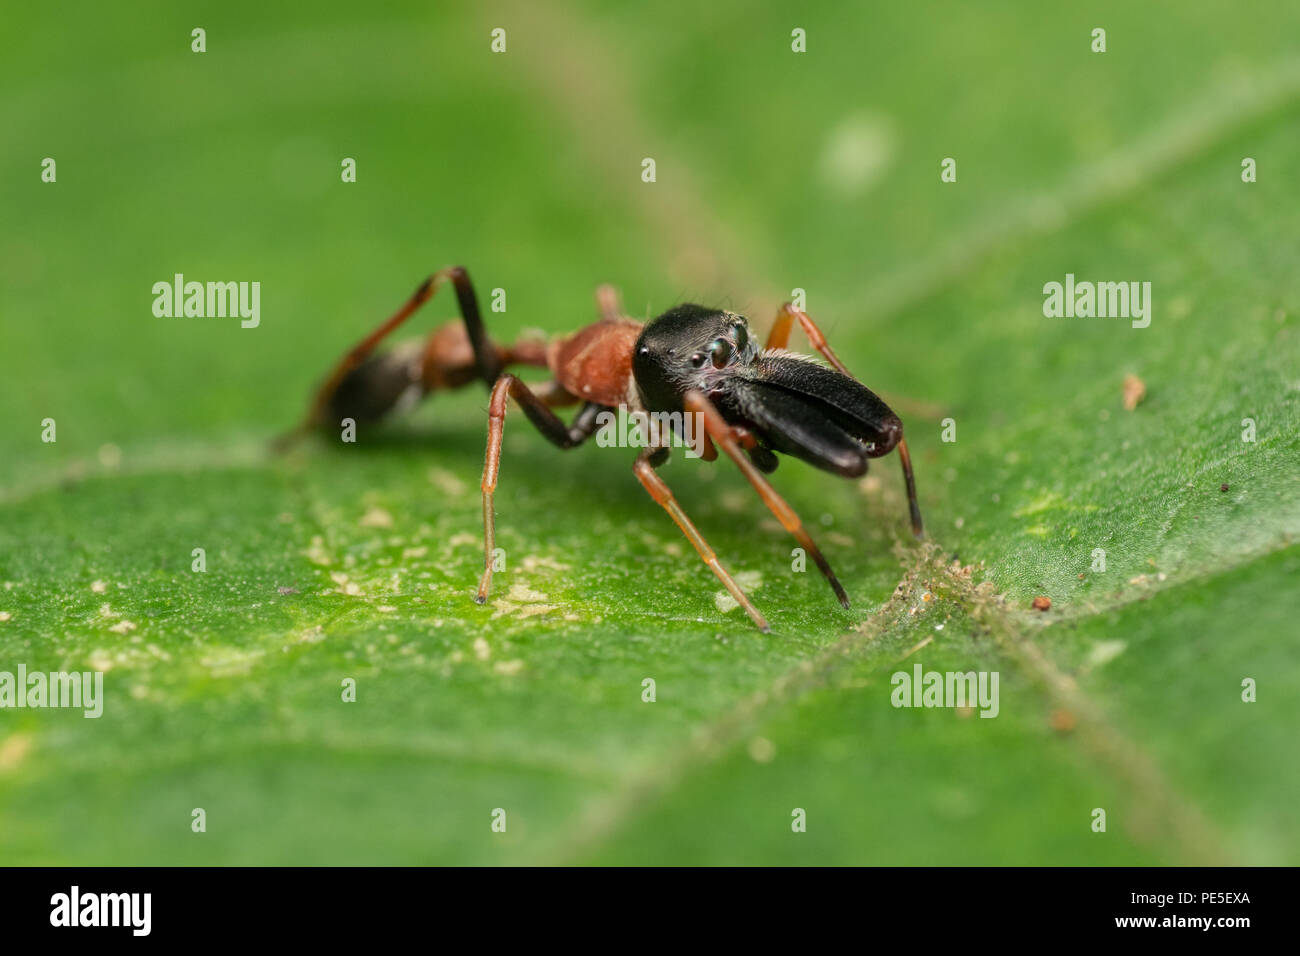 Male ant-mimicking jumping spider (Myrmarachne sp.) Myrmarachne is a genus of jumping spiders which imitate an ant by waving their front legs - Stock Image